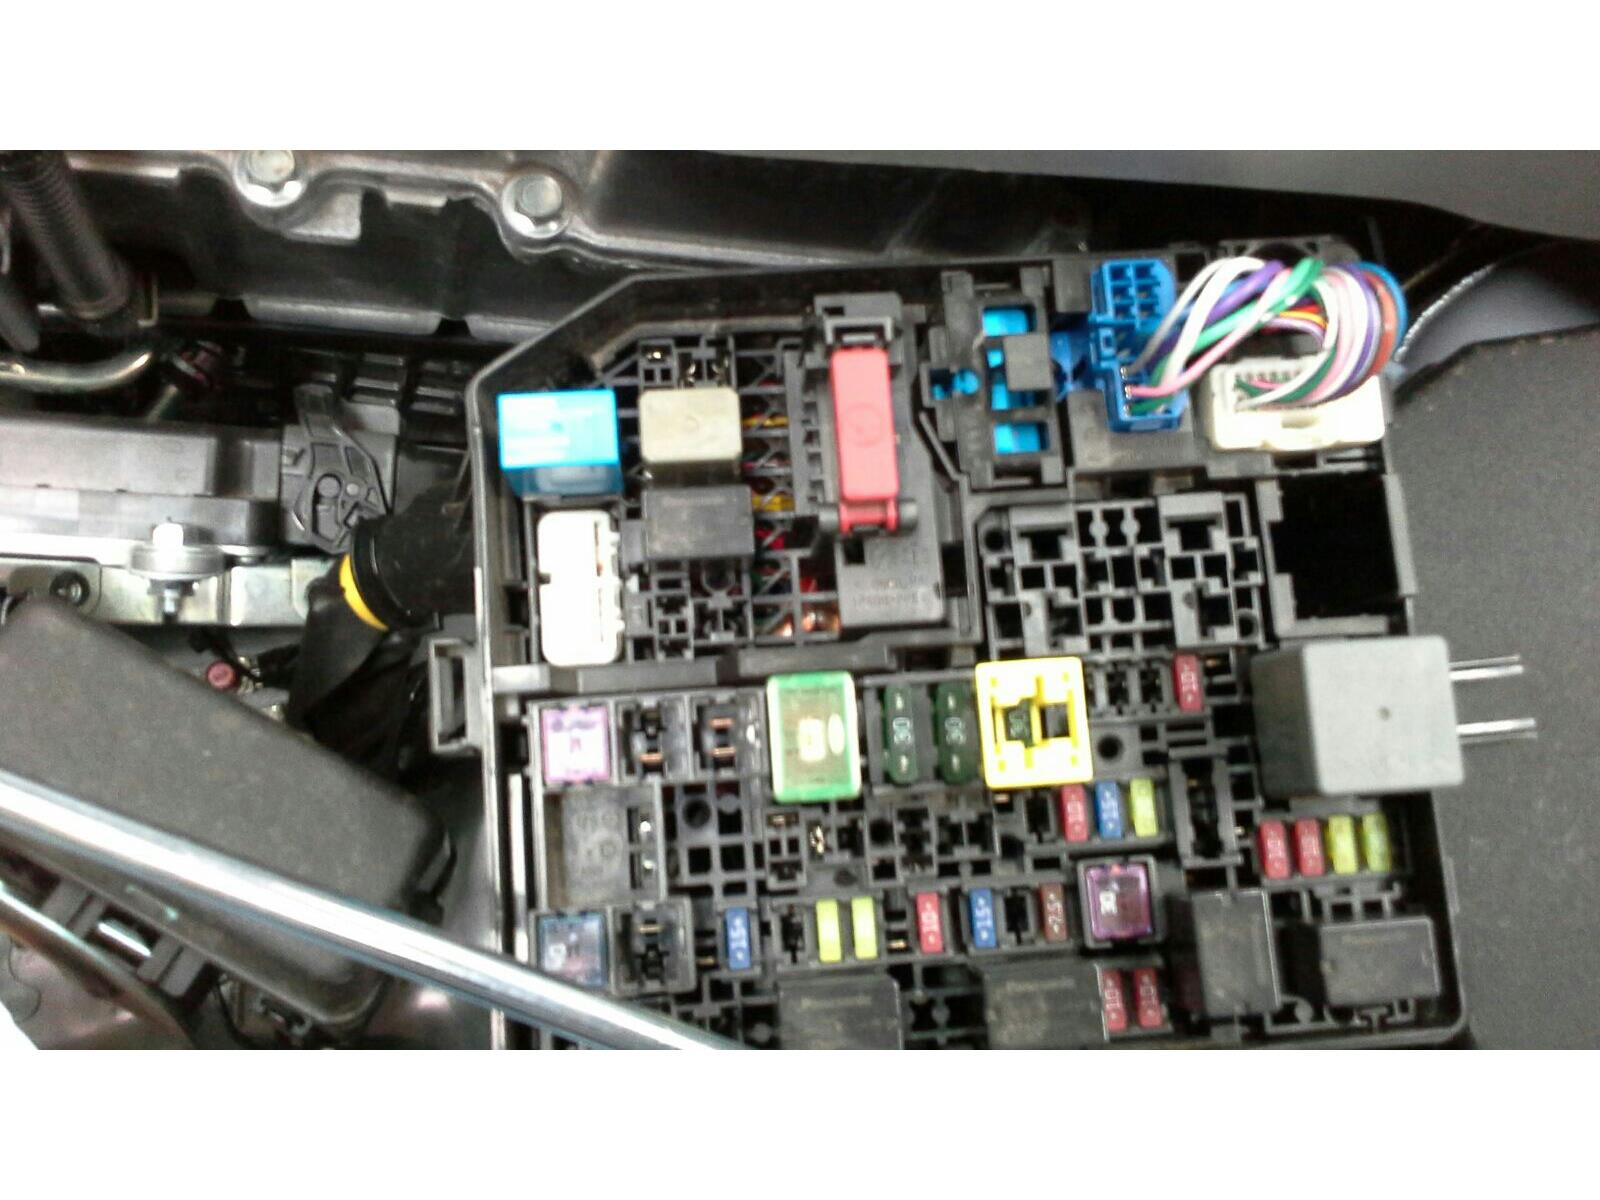 2014 Mitsubishi Outlander Fuse Box Diagram Wiring Library 2015 Phev 2013 To Petrol Electric Dodge Ram 1500